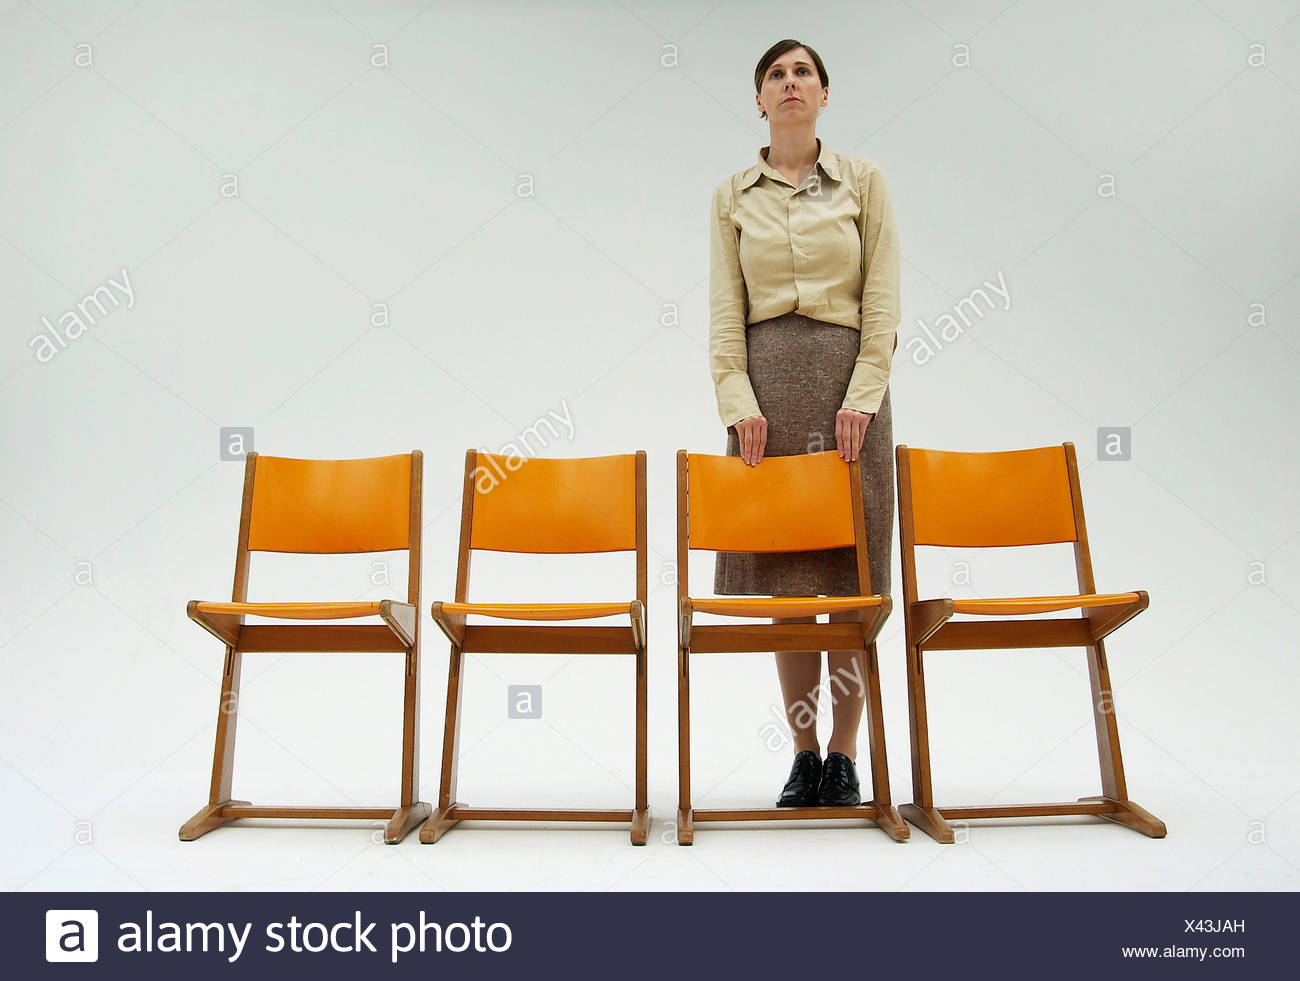 Woman wearing conservative clothes standing behind a row of orange chairs - Stock Image